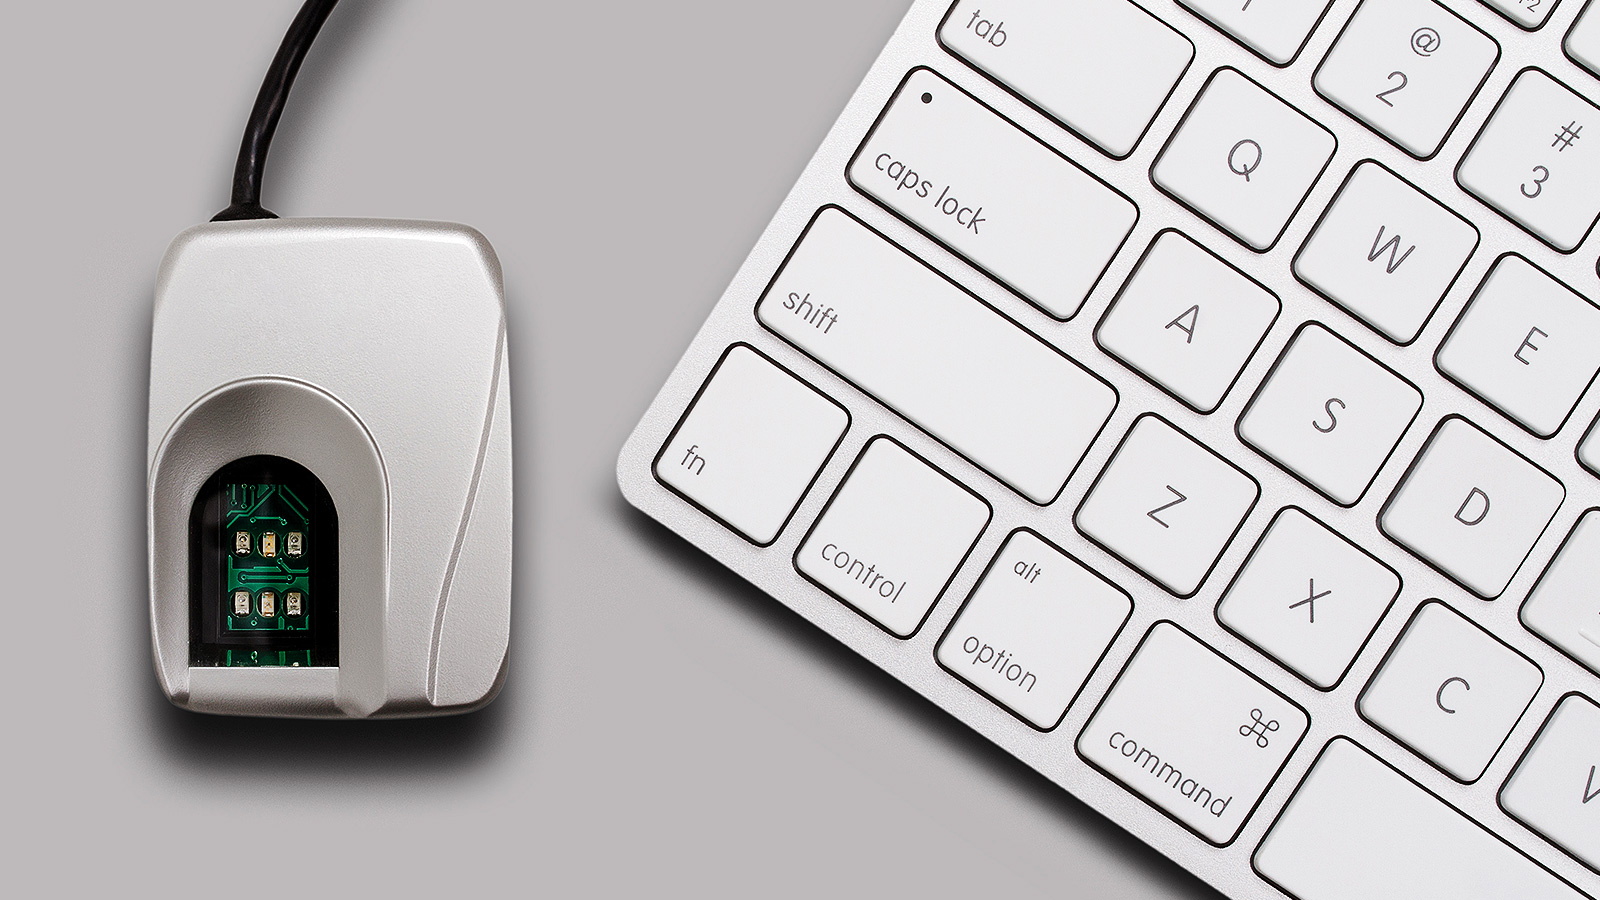 Computer mouse with a biometric chip next to a laptop keyboard.